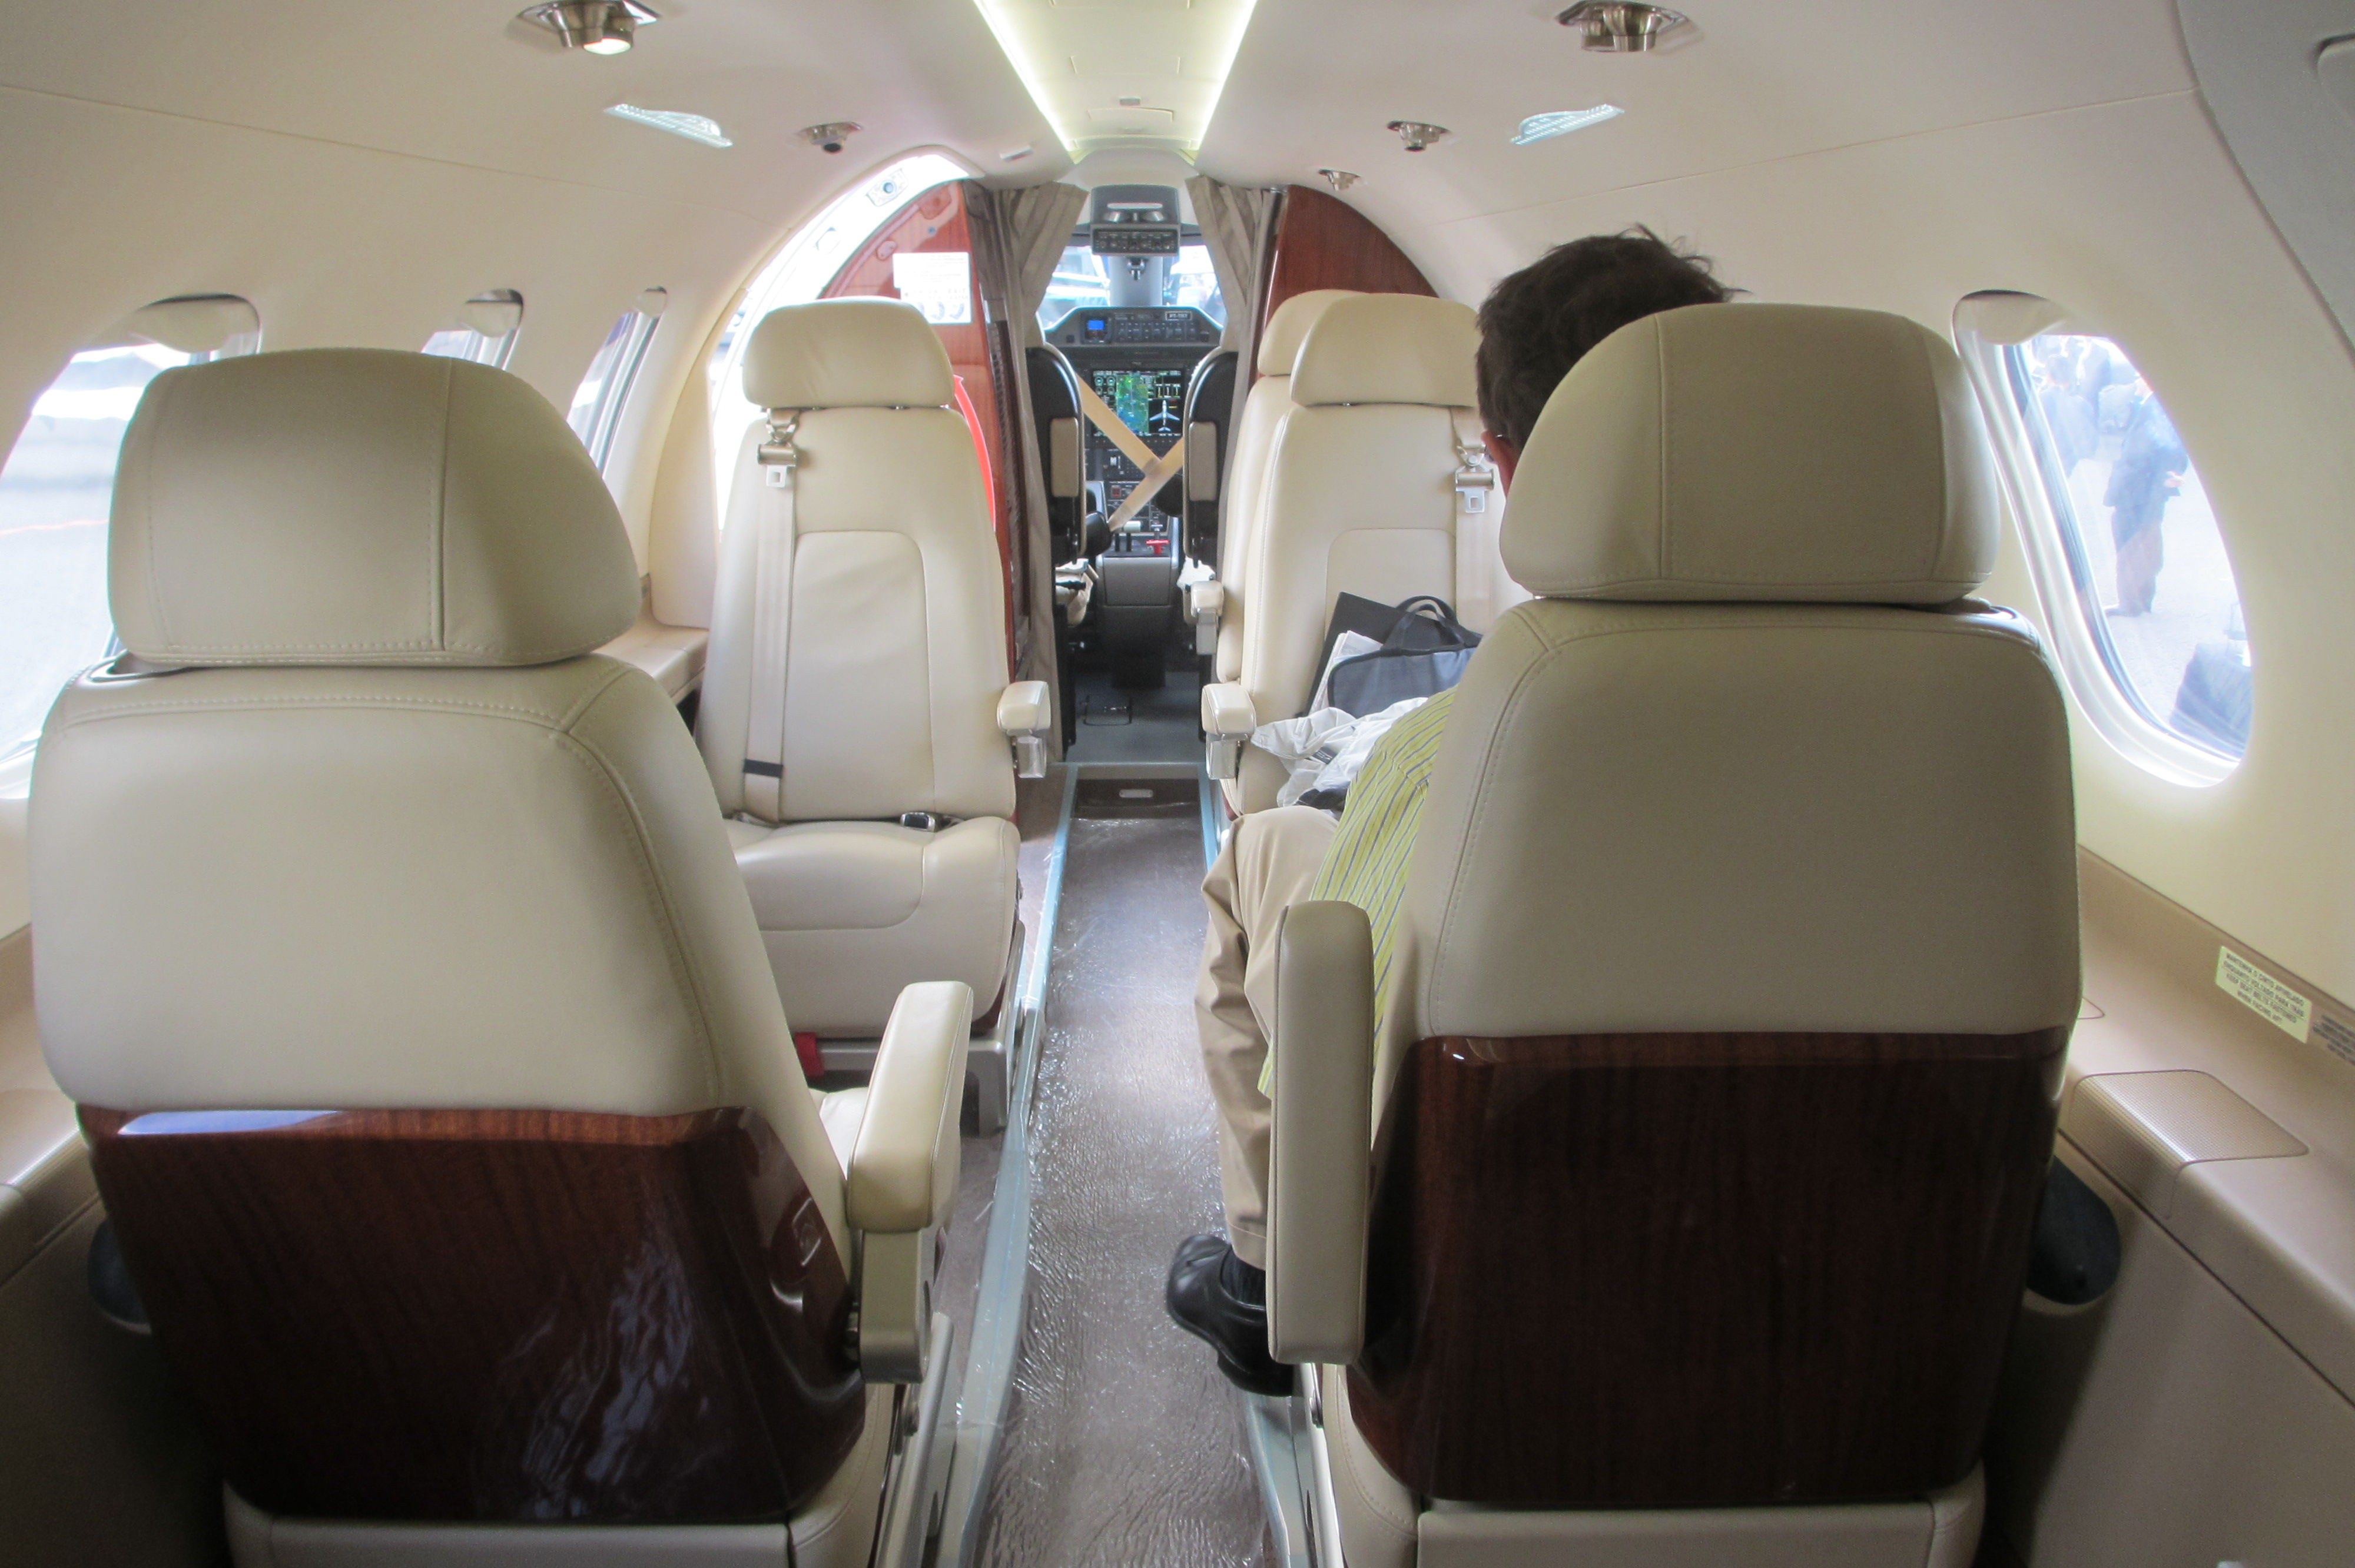 Elegant File:Embraer Phenom 300 Cabin With Passenger Forward View